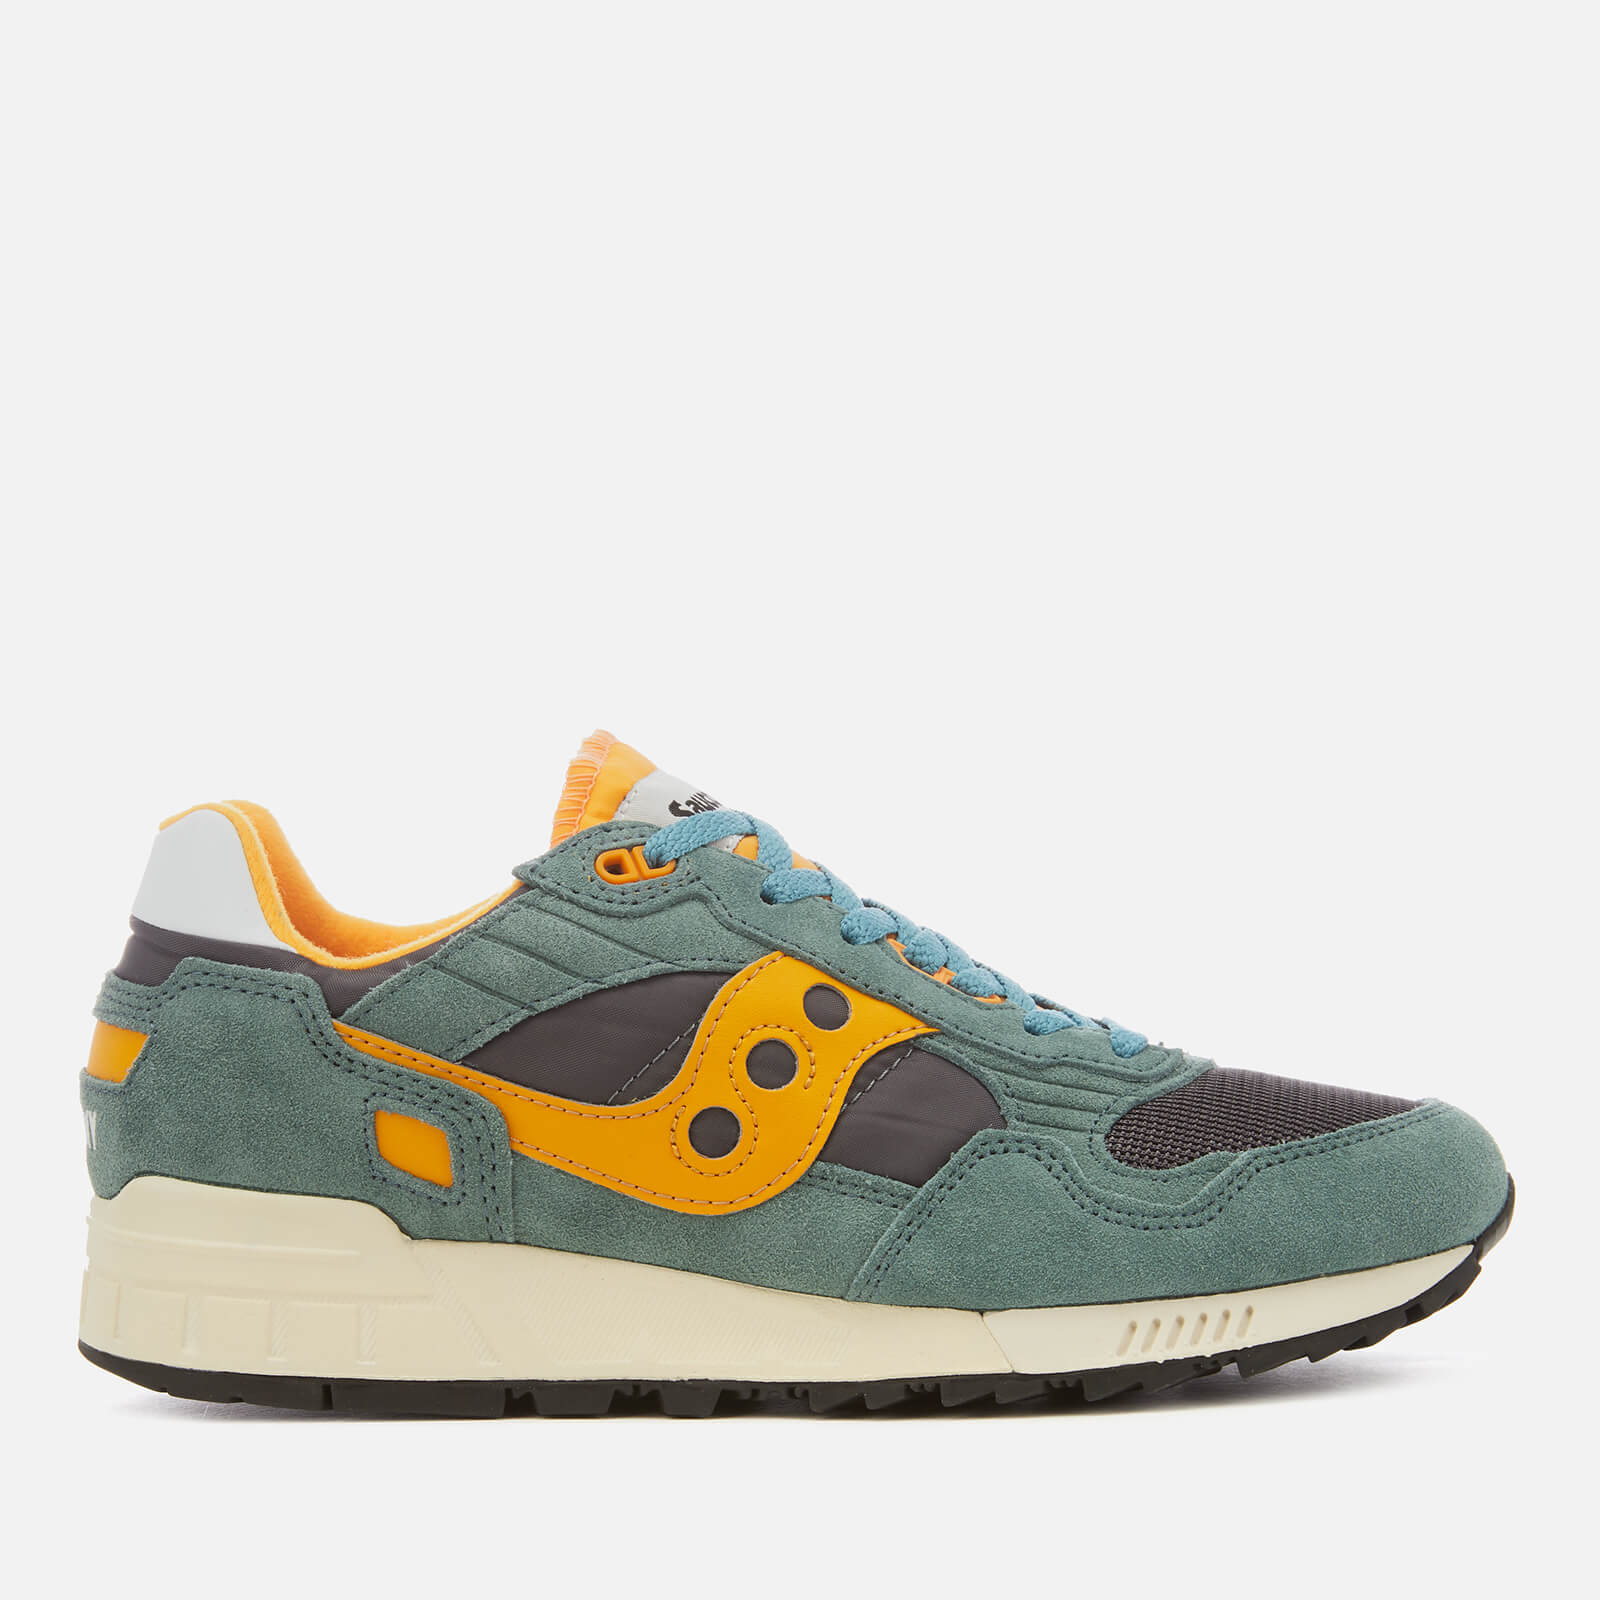 new arrival 54331 fbe19 Saucony Men's Shadow 5000 Vintage Trainers - Teal/Blue/Orange